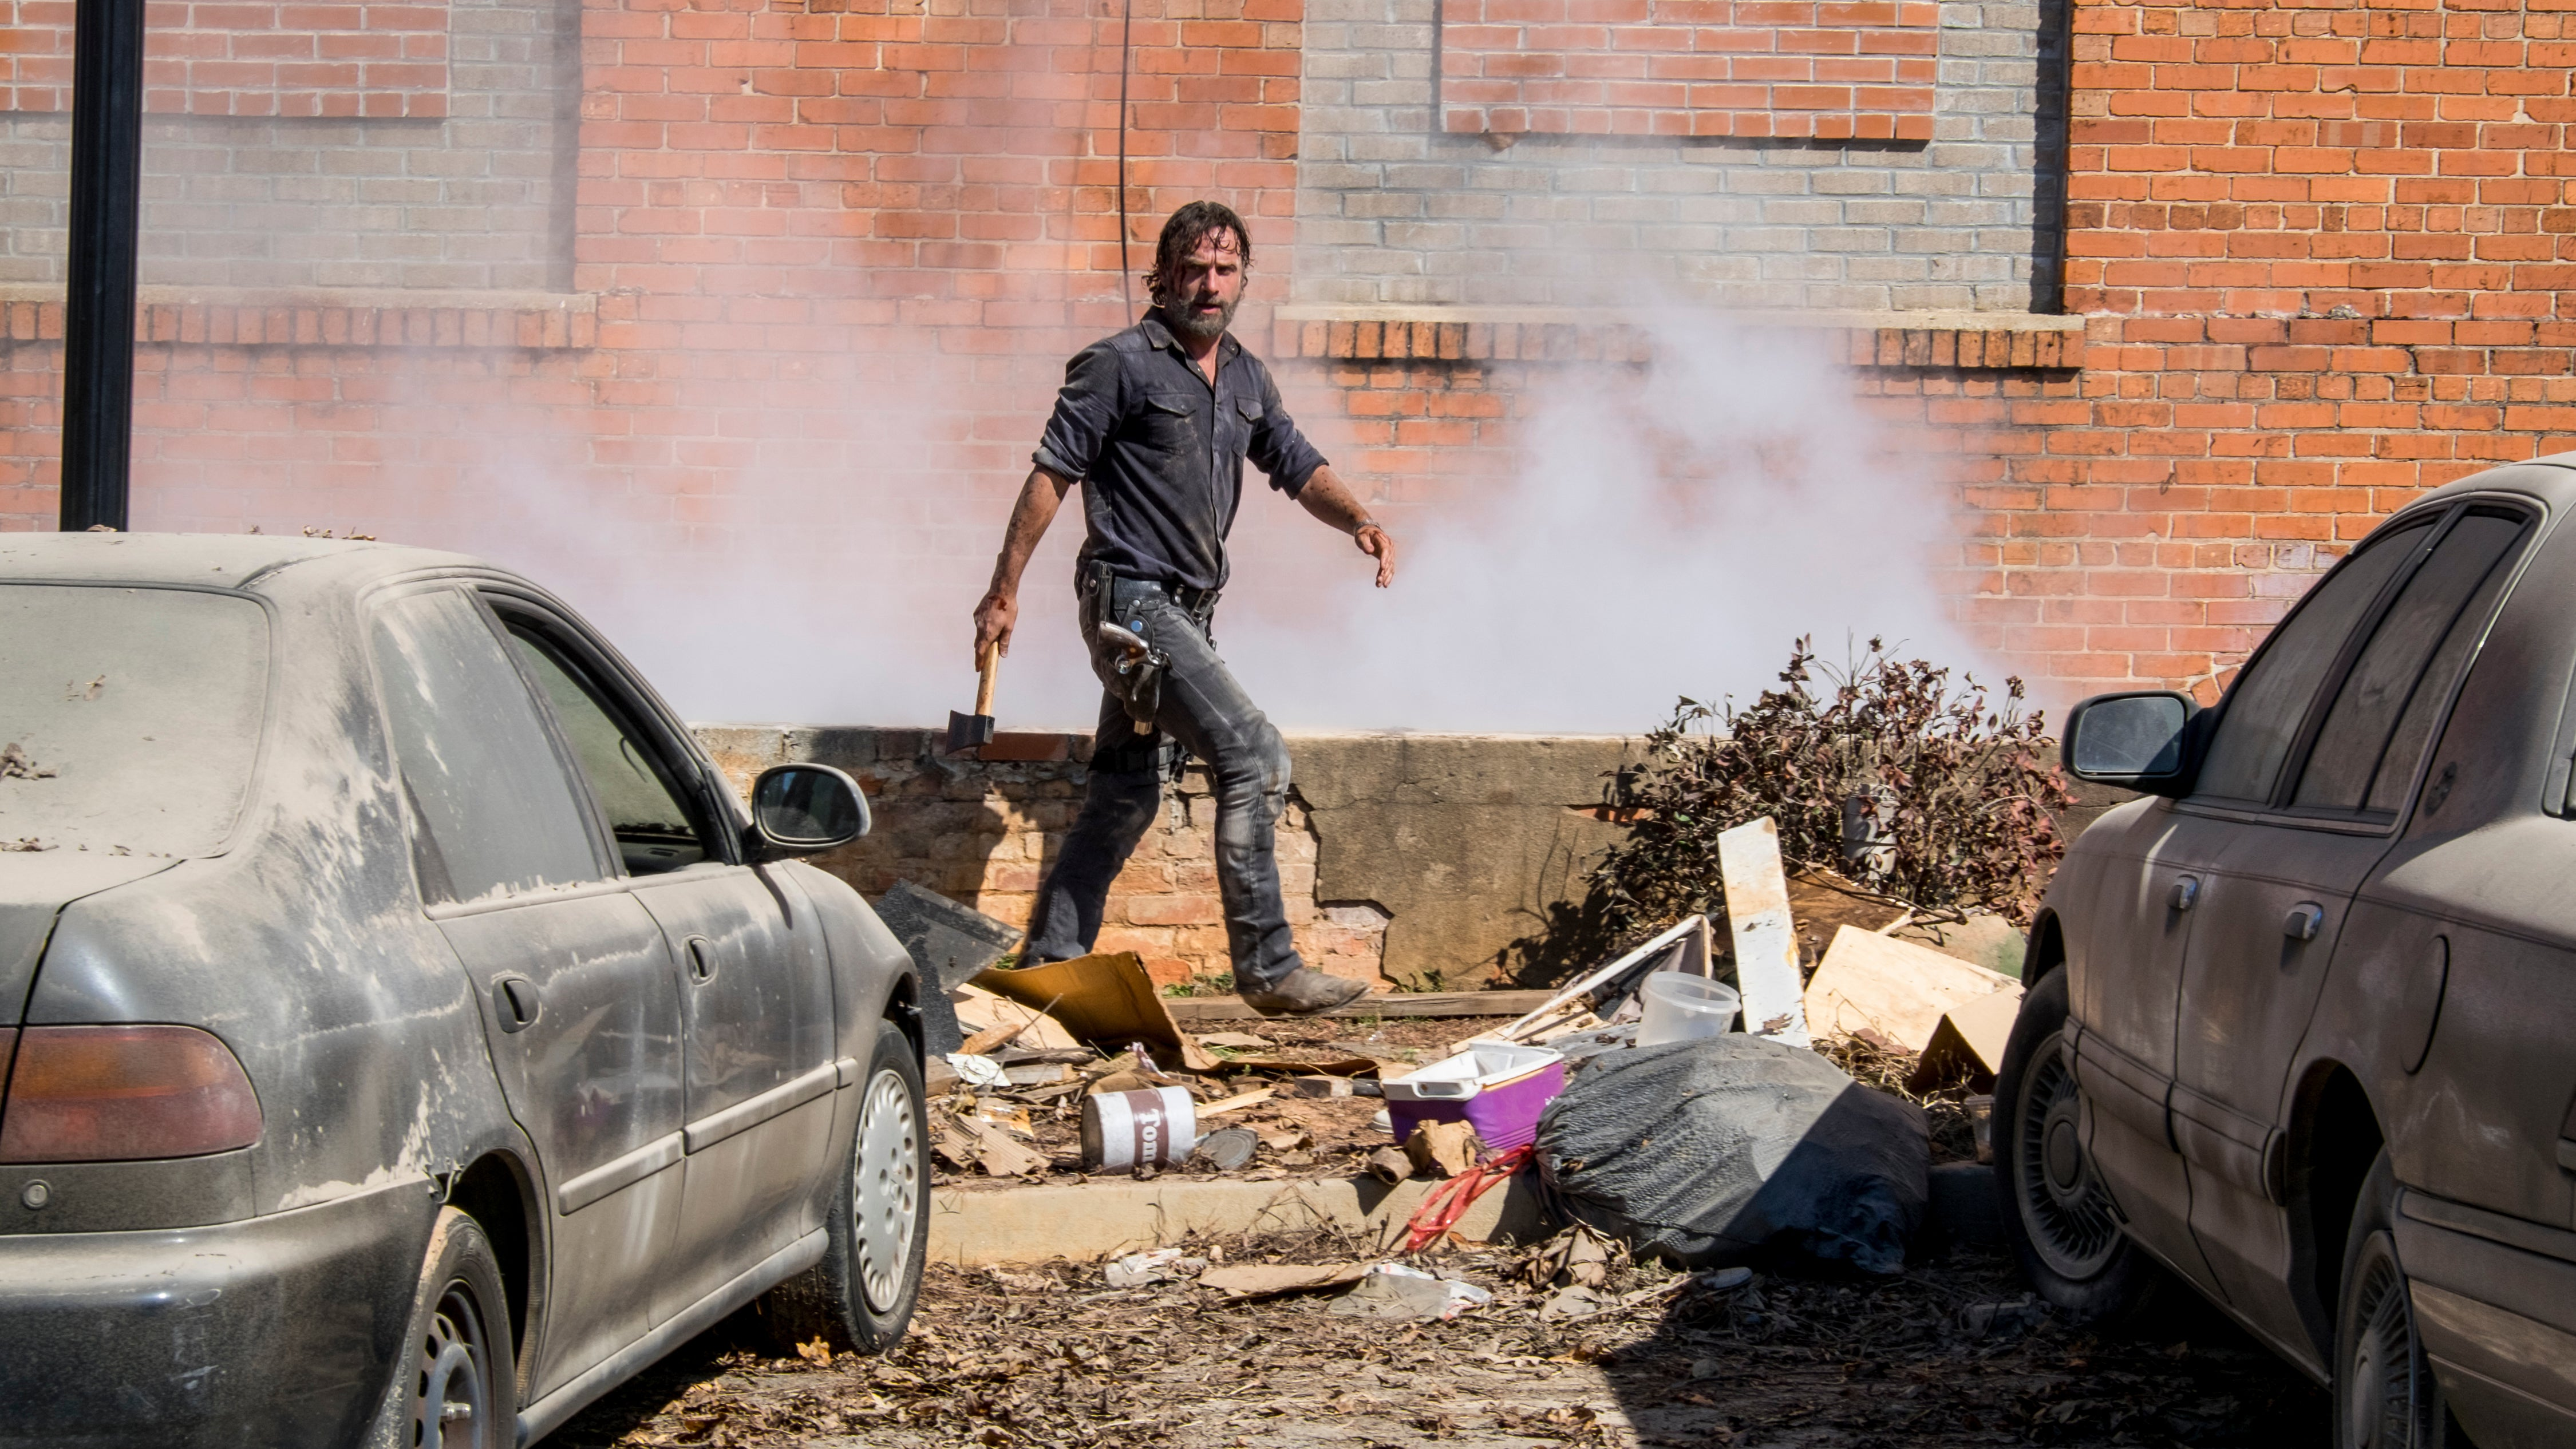 A Miracle Happened On The Walking Dead, But Does It Matter?